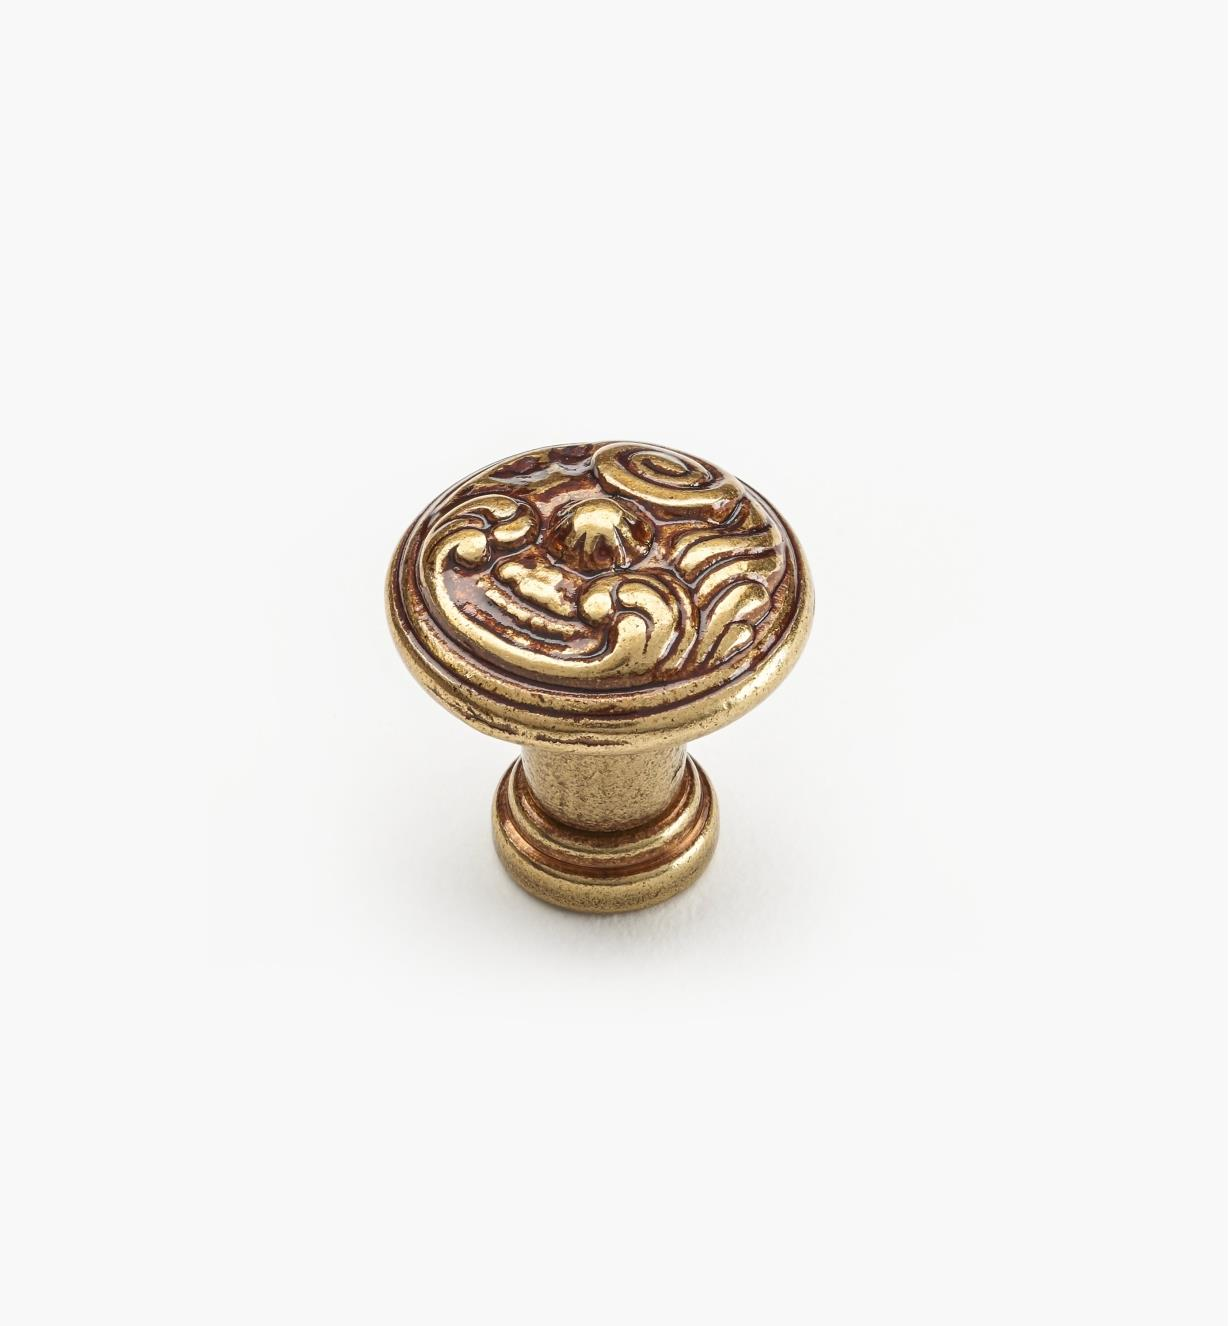 01A5320 - 20mm x 21mm Louis XV Knob